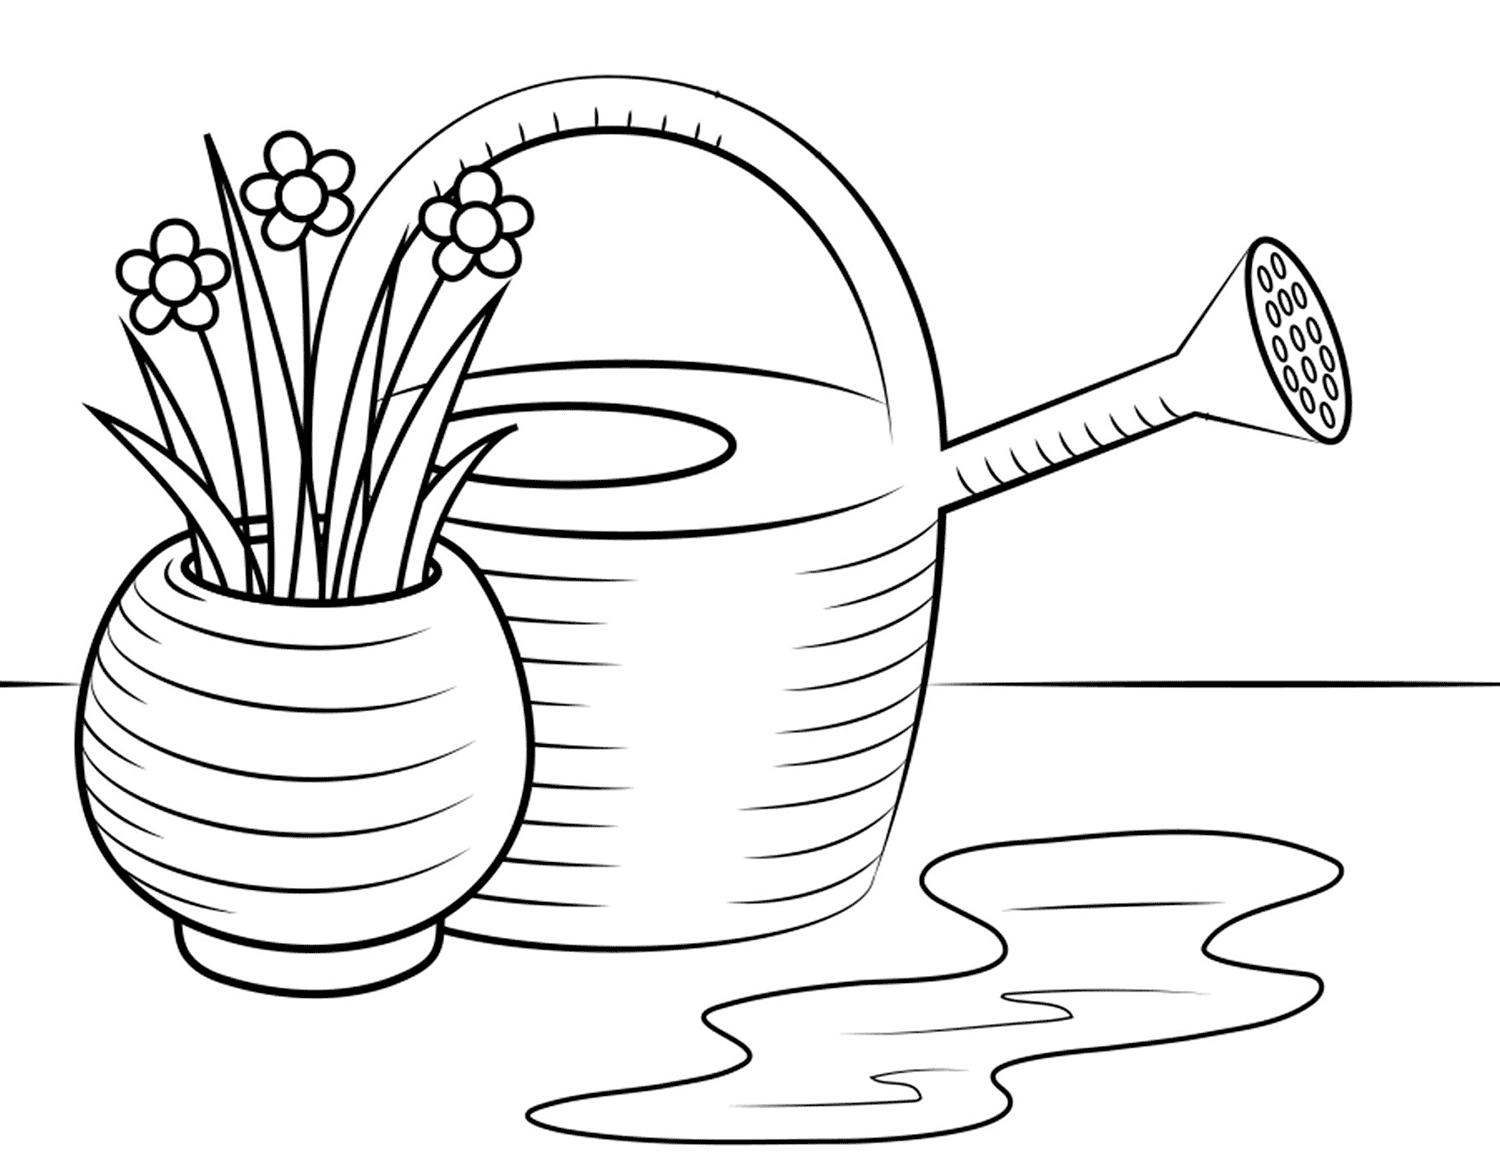 Watering Cane With Flowers